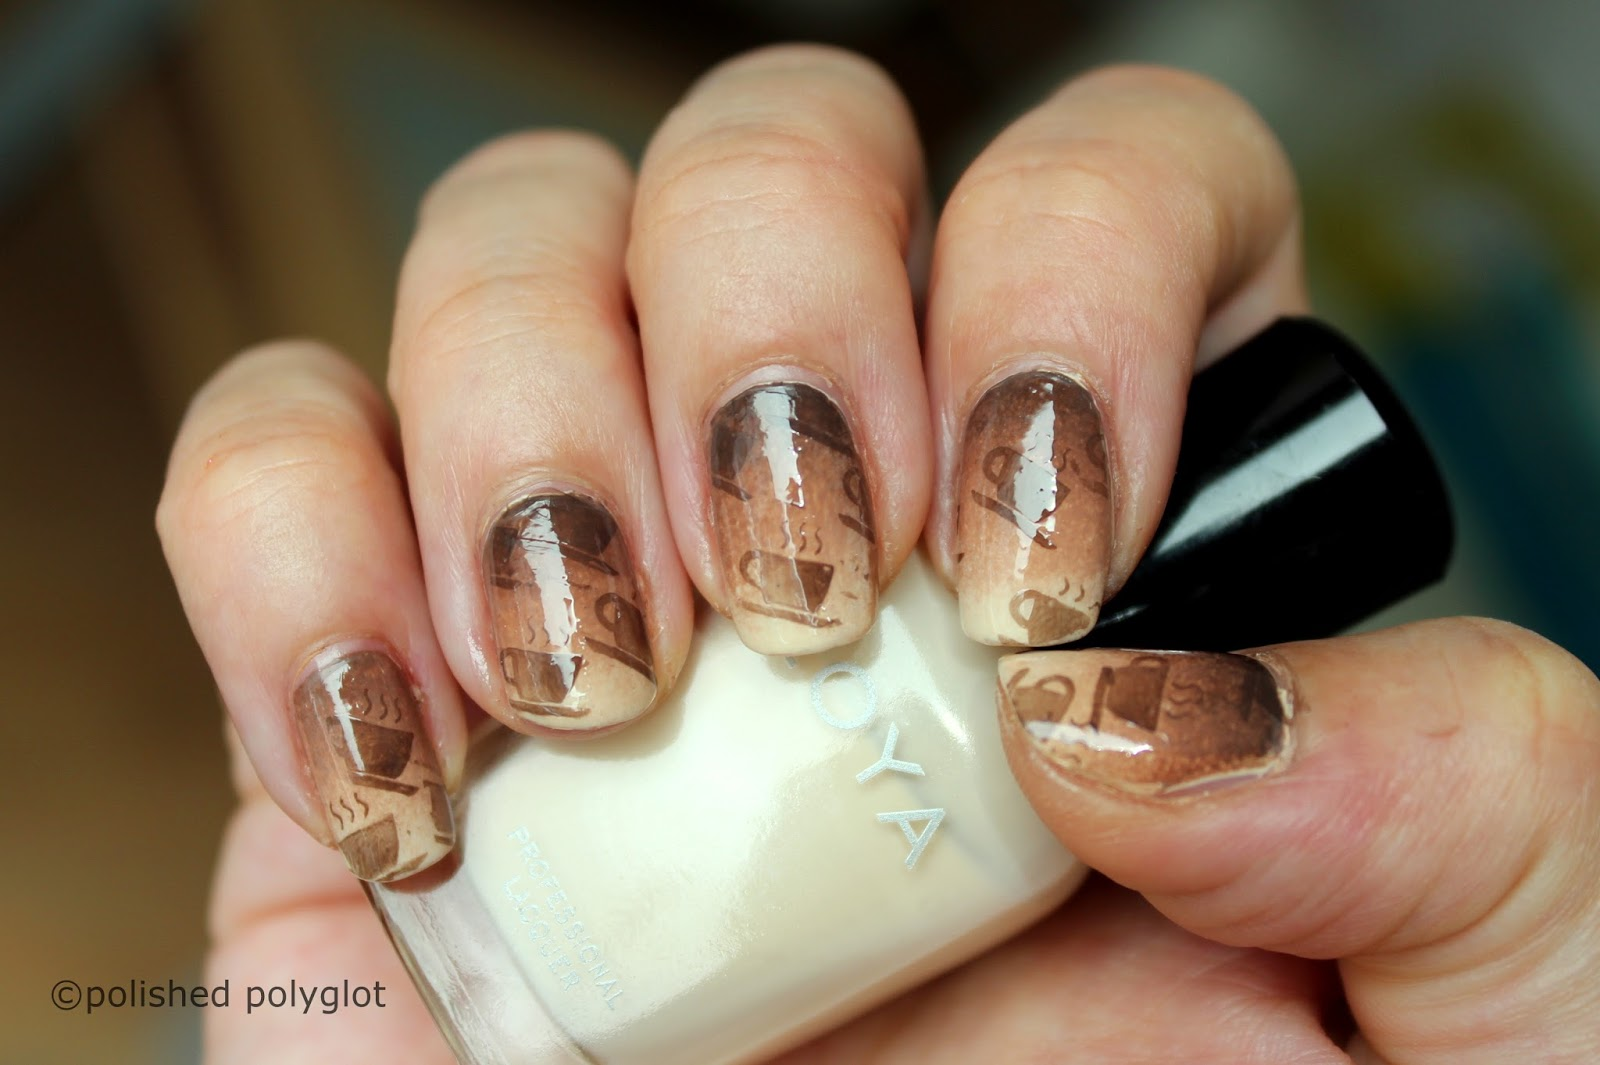 Nail art fancy a cappuccino last nail art design now what cappuccino nail art prinsesfo Choice Image